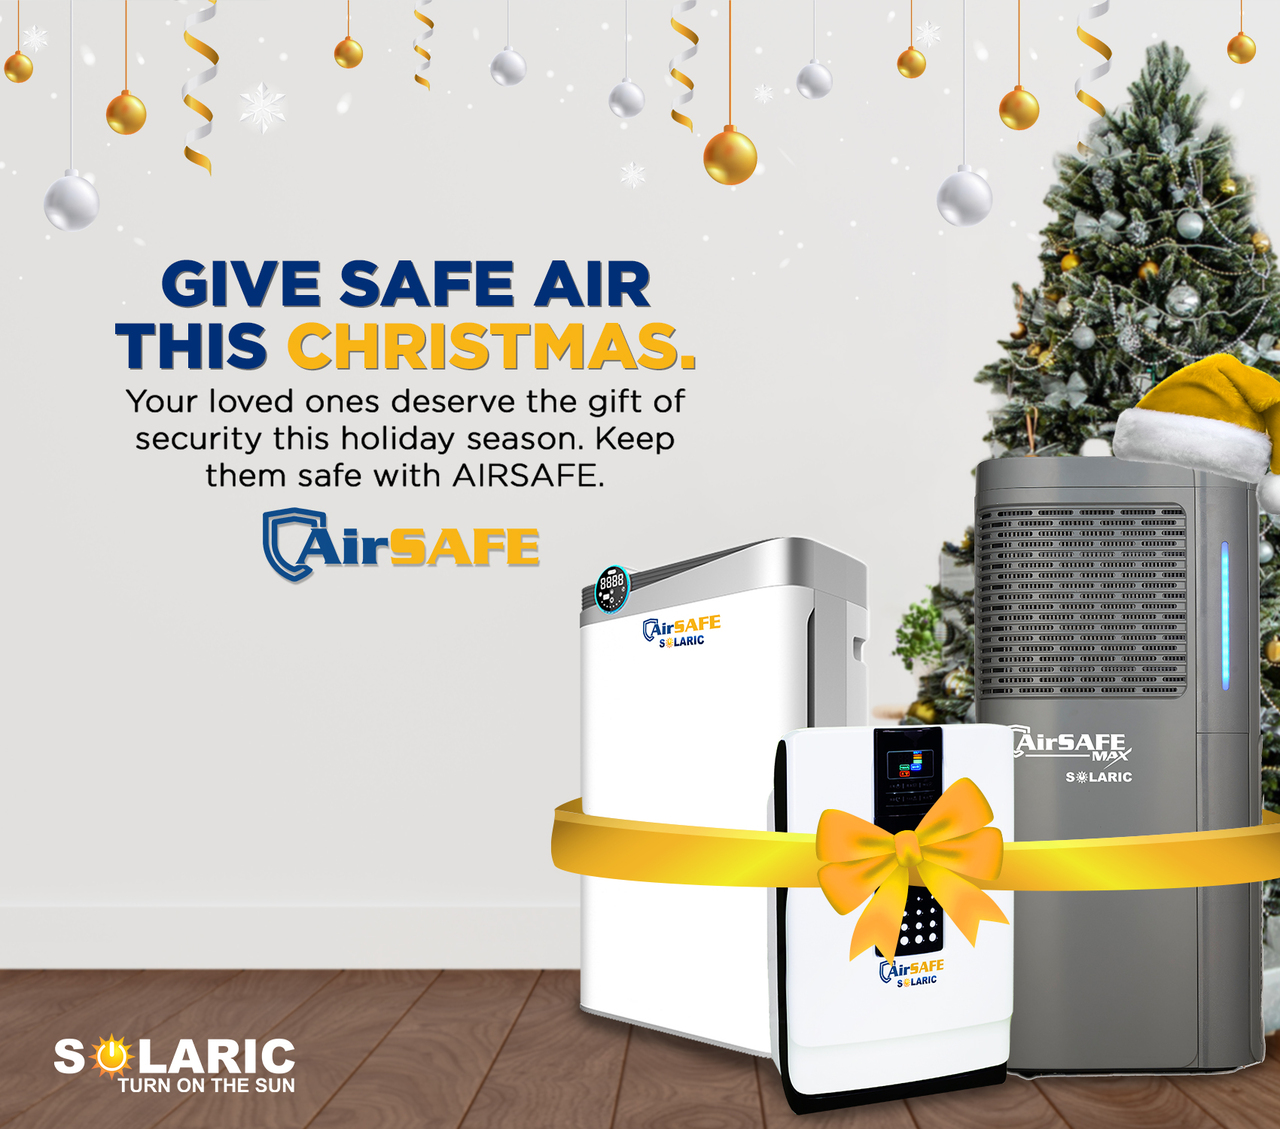 AIRSAFE FOR CHRISTMAS